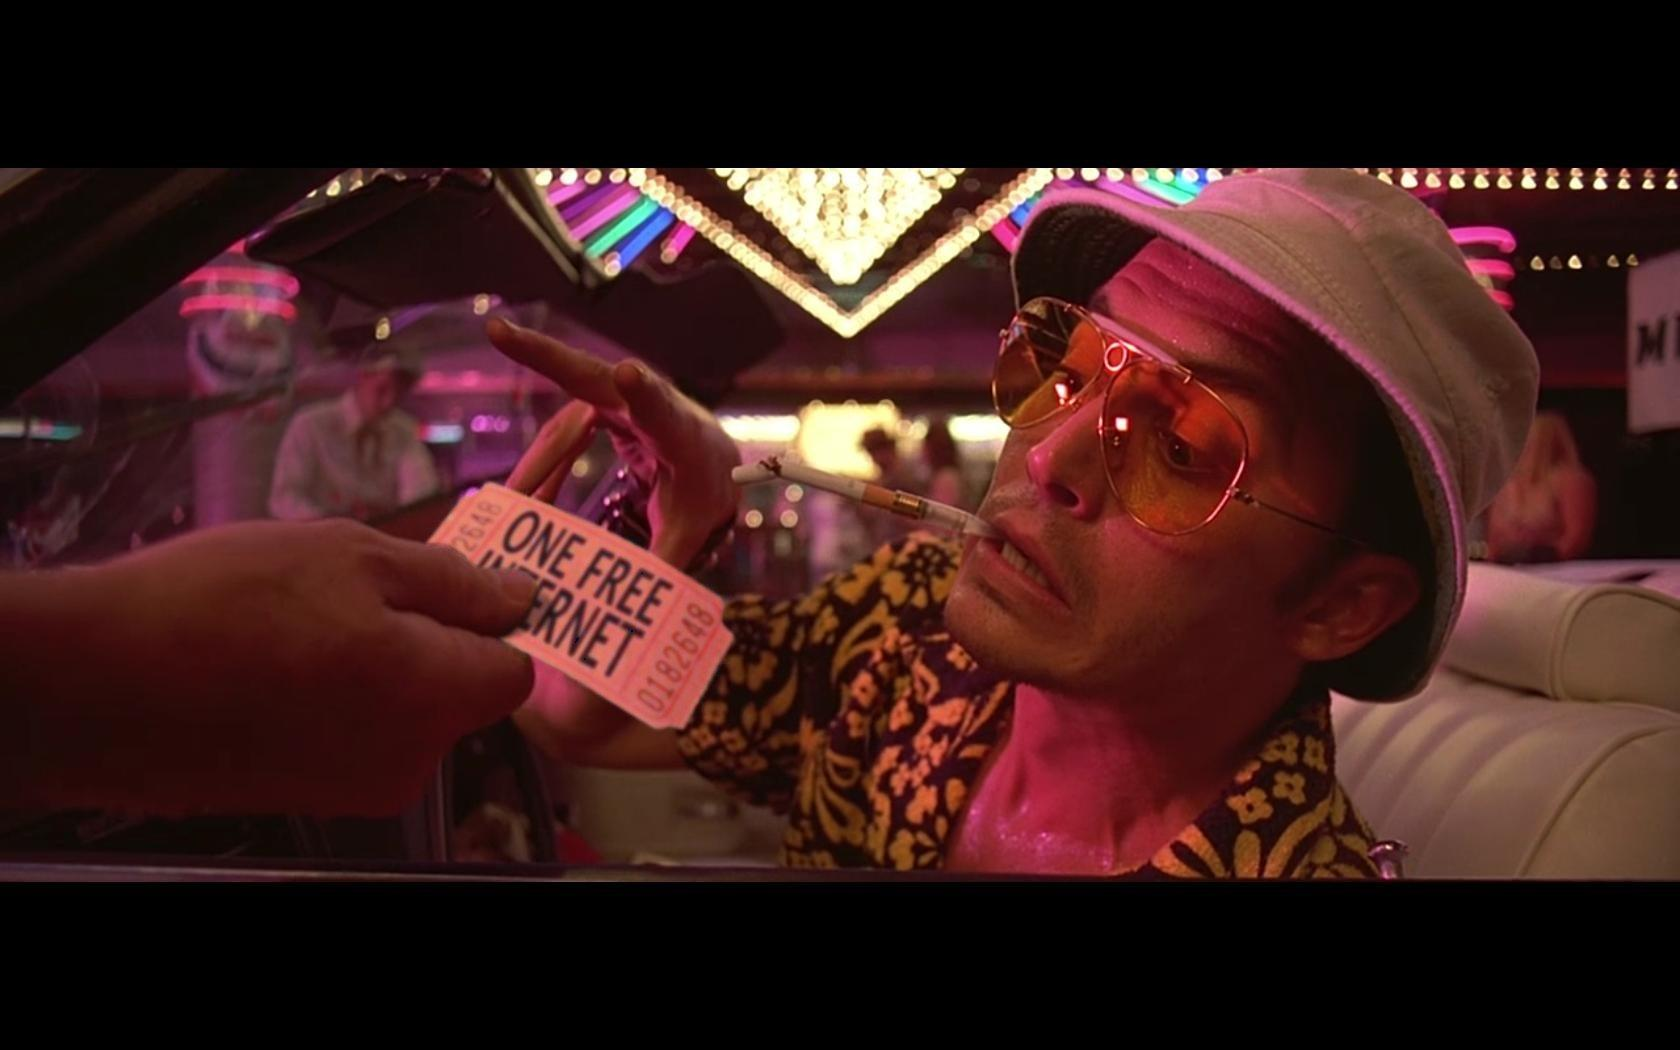 fear and loathing in las vegas download full movie